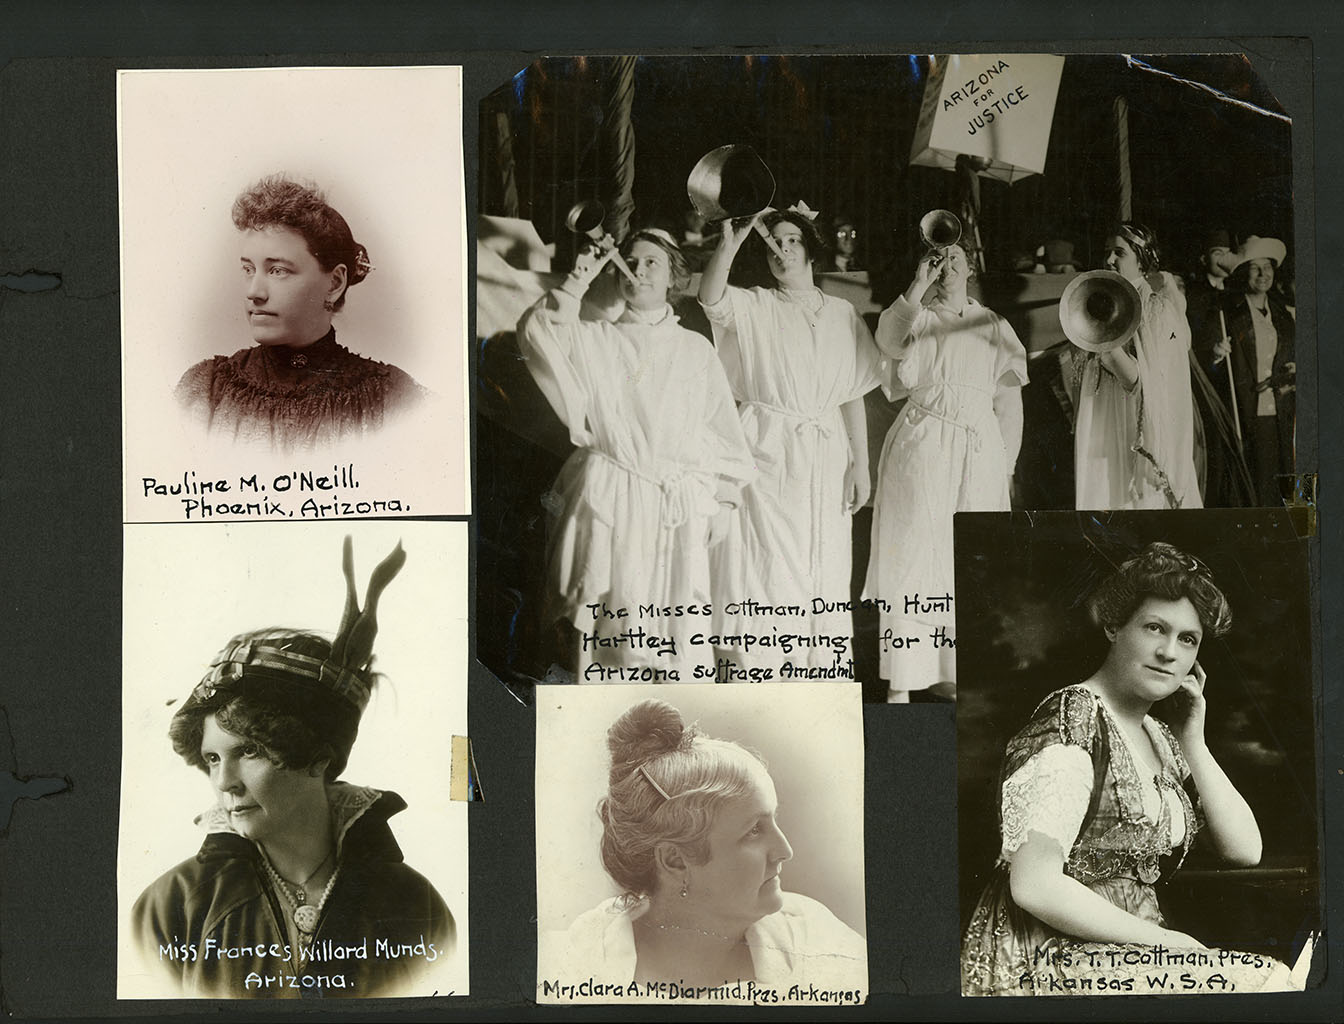 Arizona suffrage image featuring Arkansans Mrs. Clara McDiarmid and Mrs. T.T. Cotnam